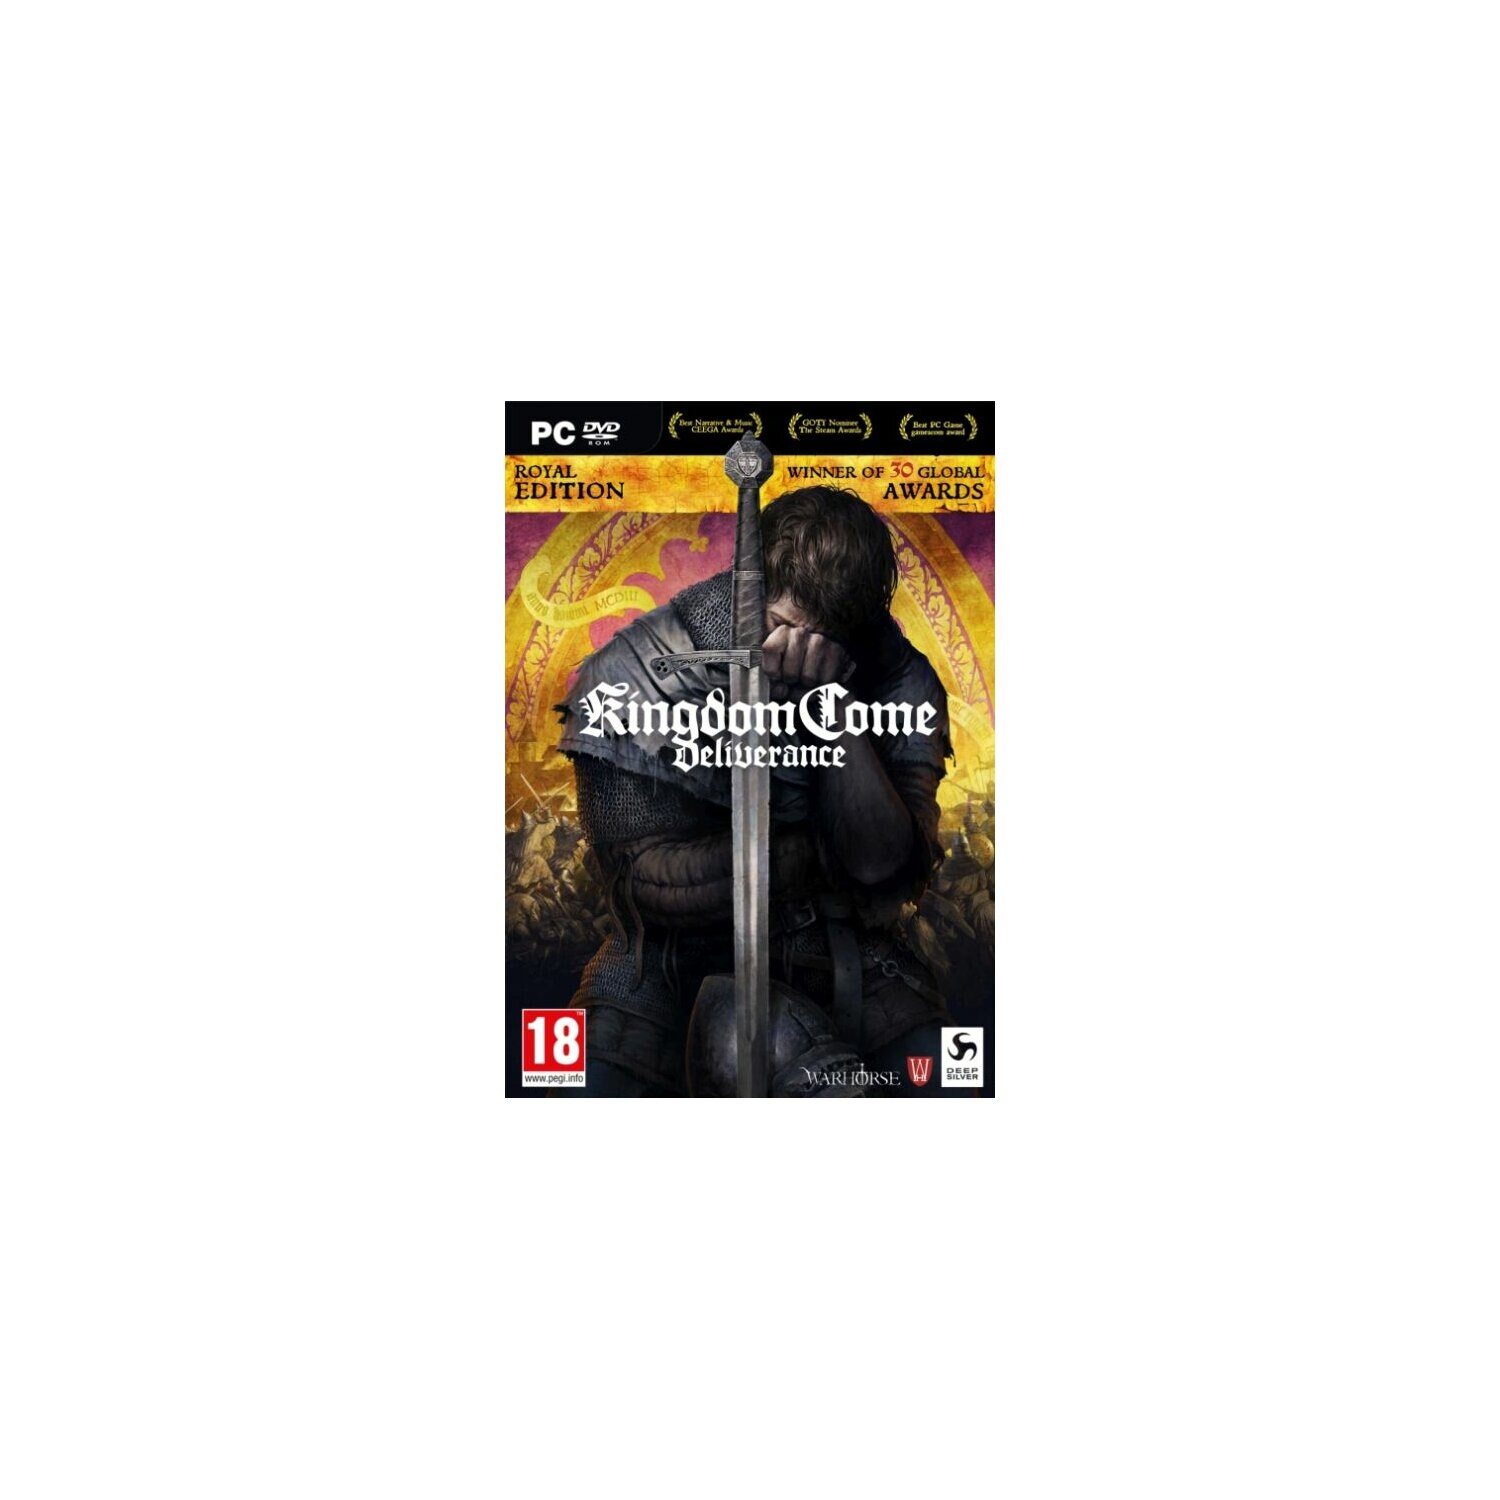 Gra PC Kingdom Come: Deliverance - Royal Edition